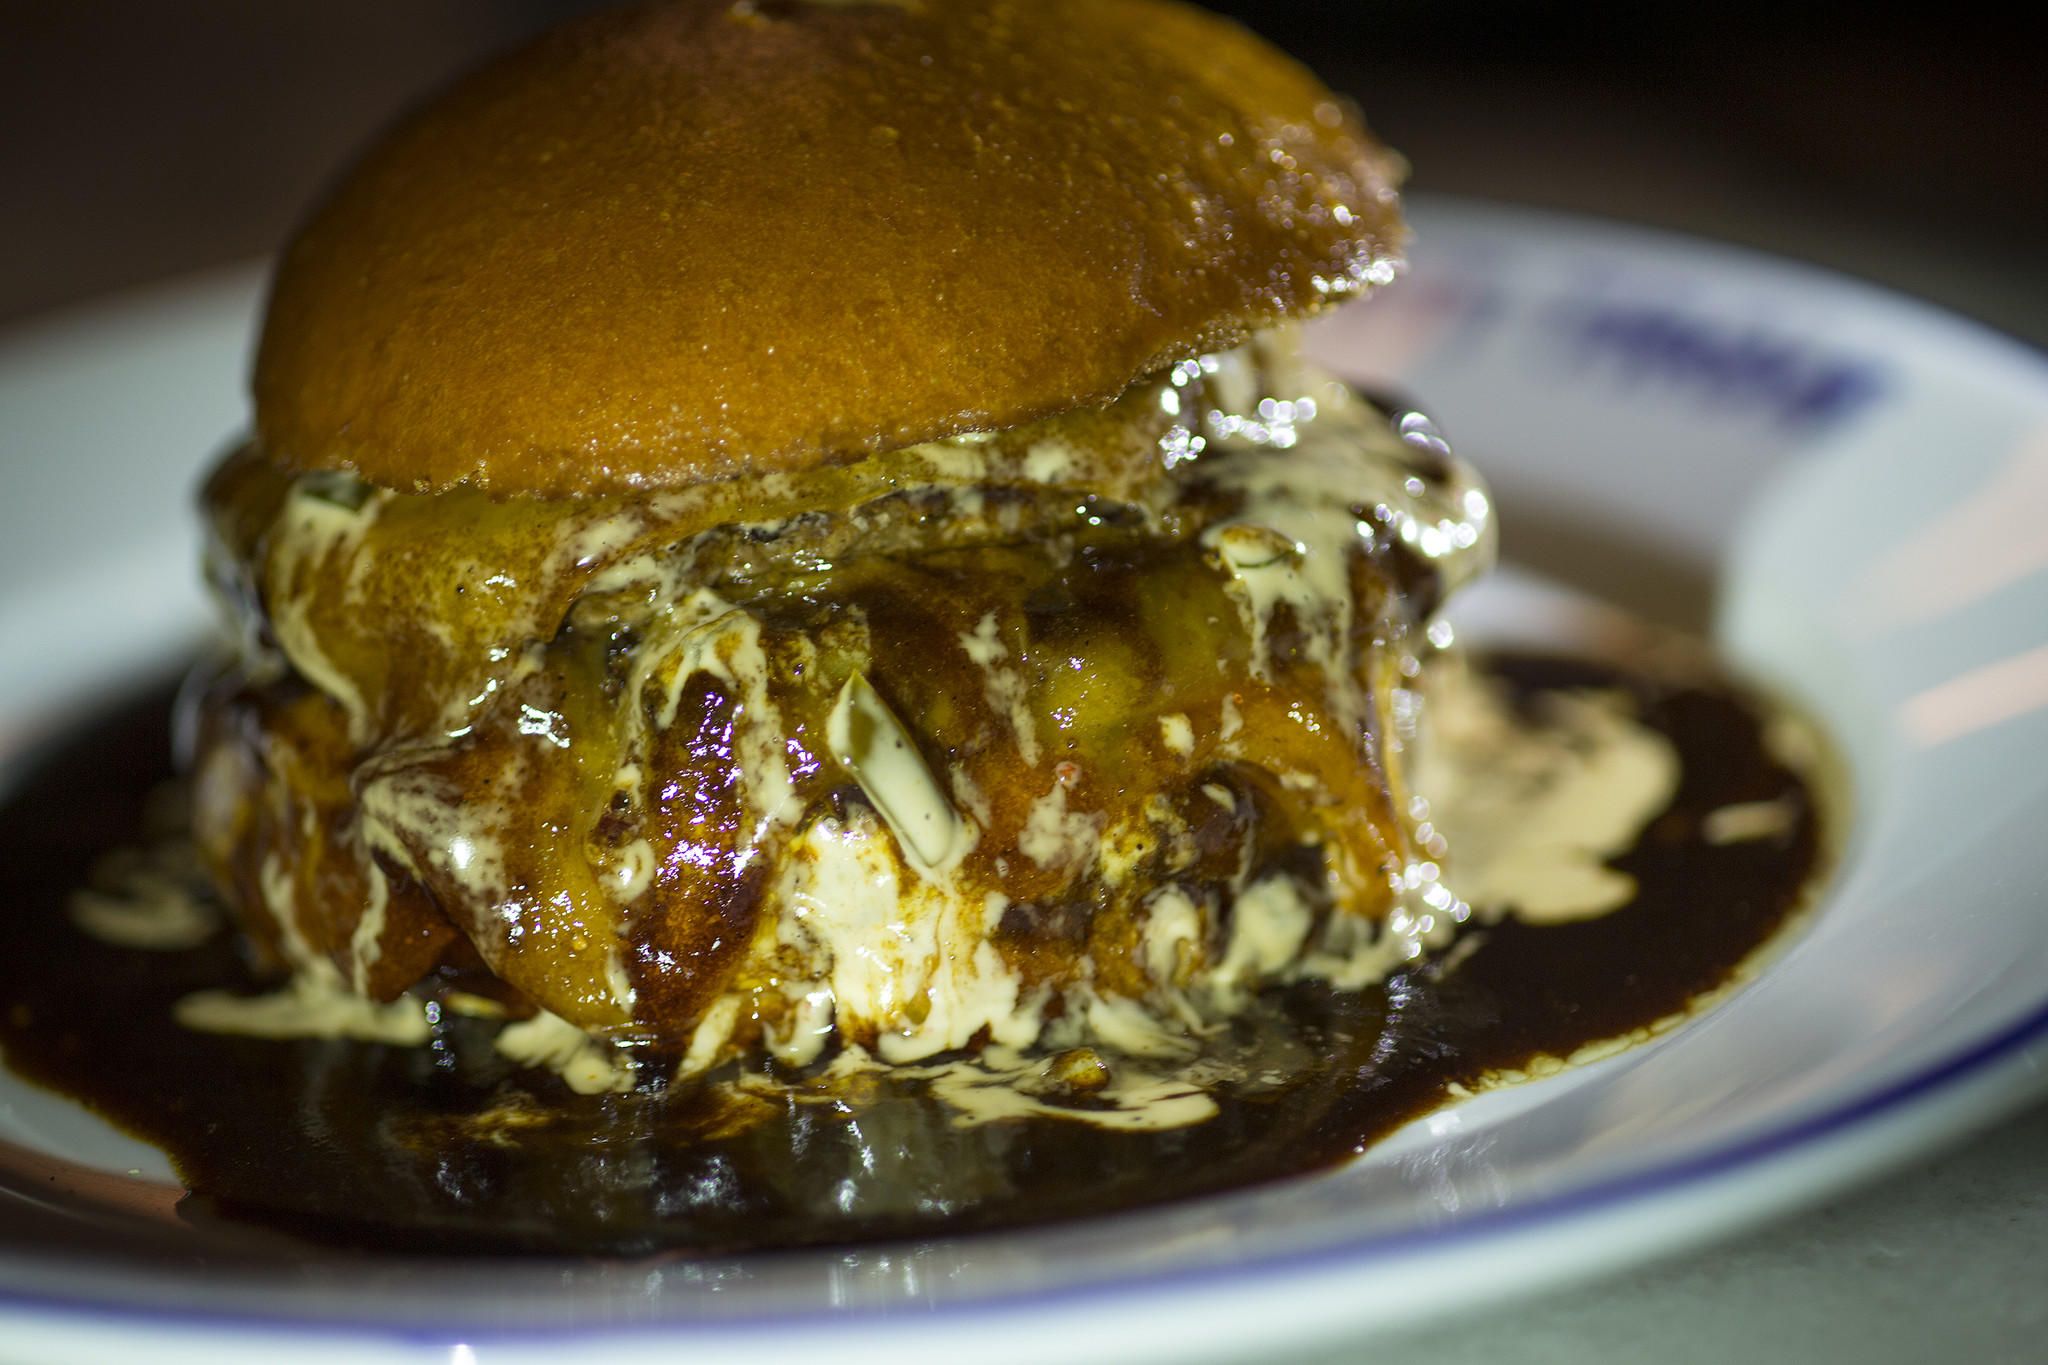 Chef April Bloomfield ordered the Bic Mec burger during her Burger Crawl stop at Petit Trois.